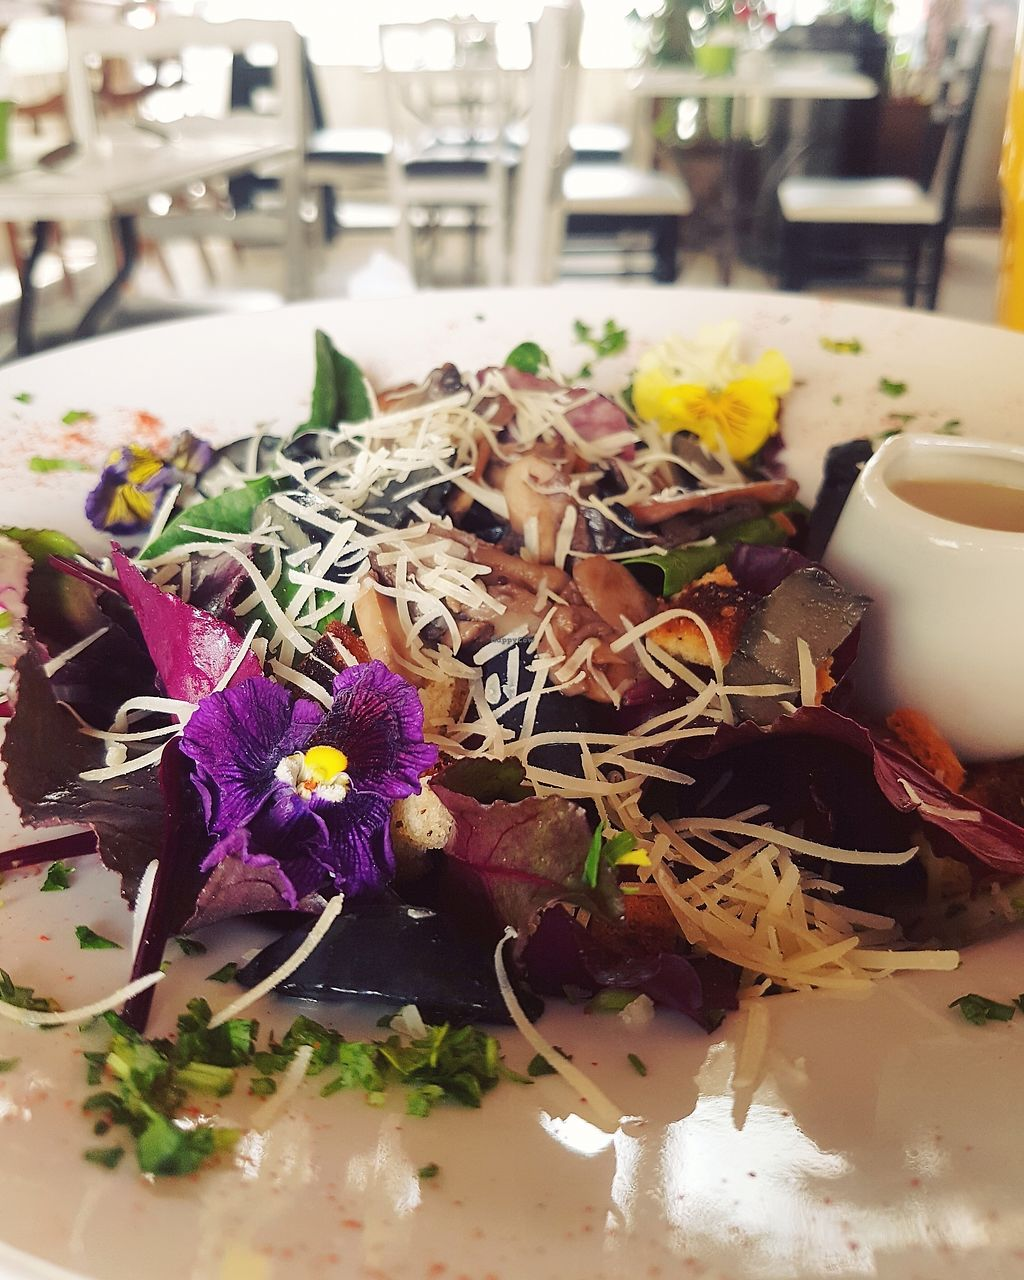 """Photo of V.O.P. - Very Organic People  by <a href=""""/members/profile/happysparrow"""">happysparrow</a> <br/>Vegetarian ceasar salad <br/> September 30, 2017  - <a href='/contact/abuse/image/27803/309967'>Report</a>"""